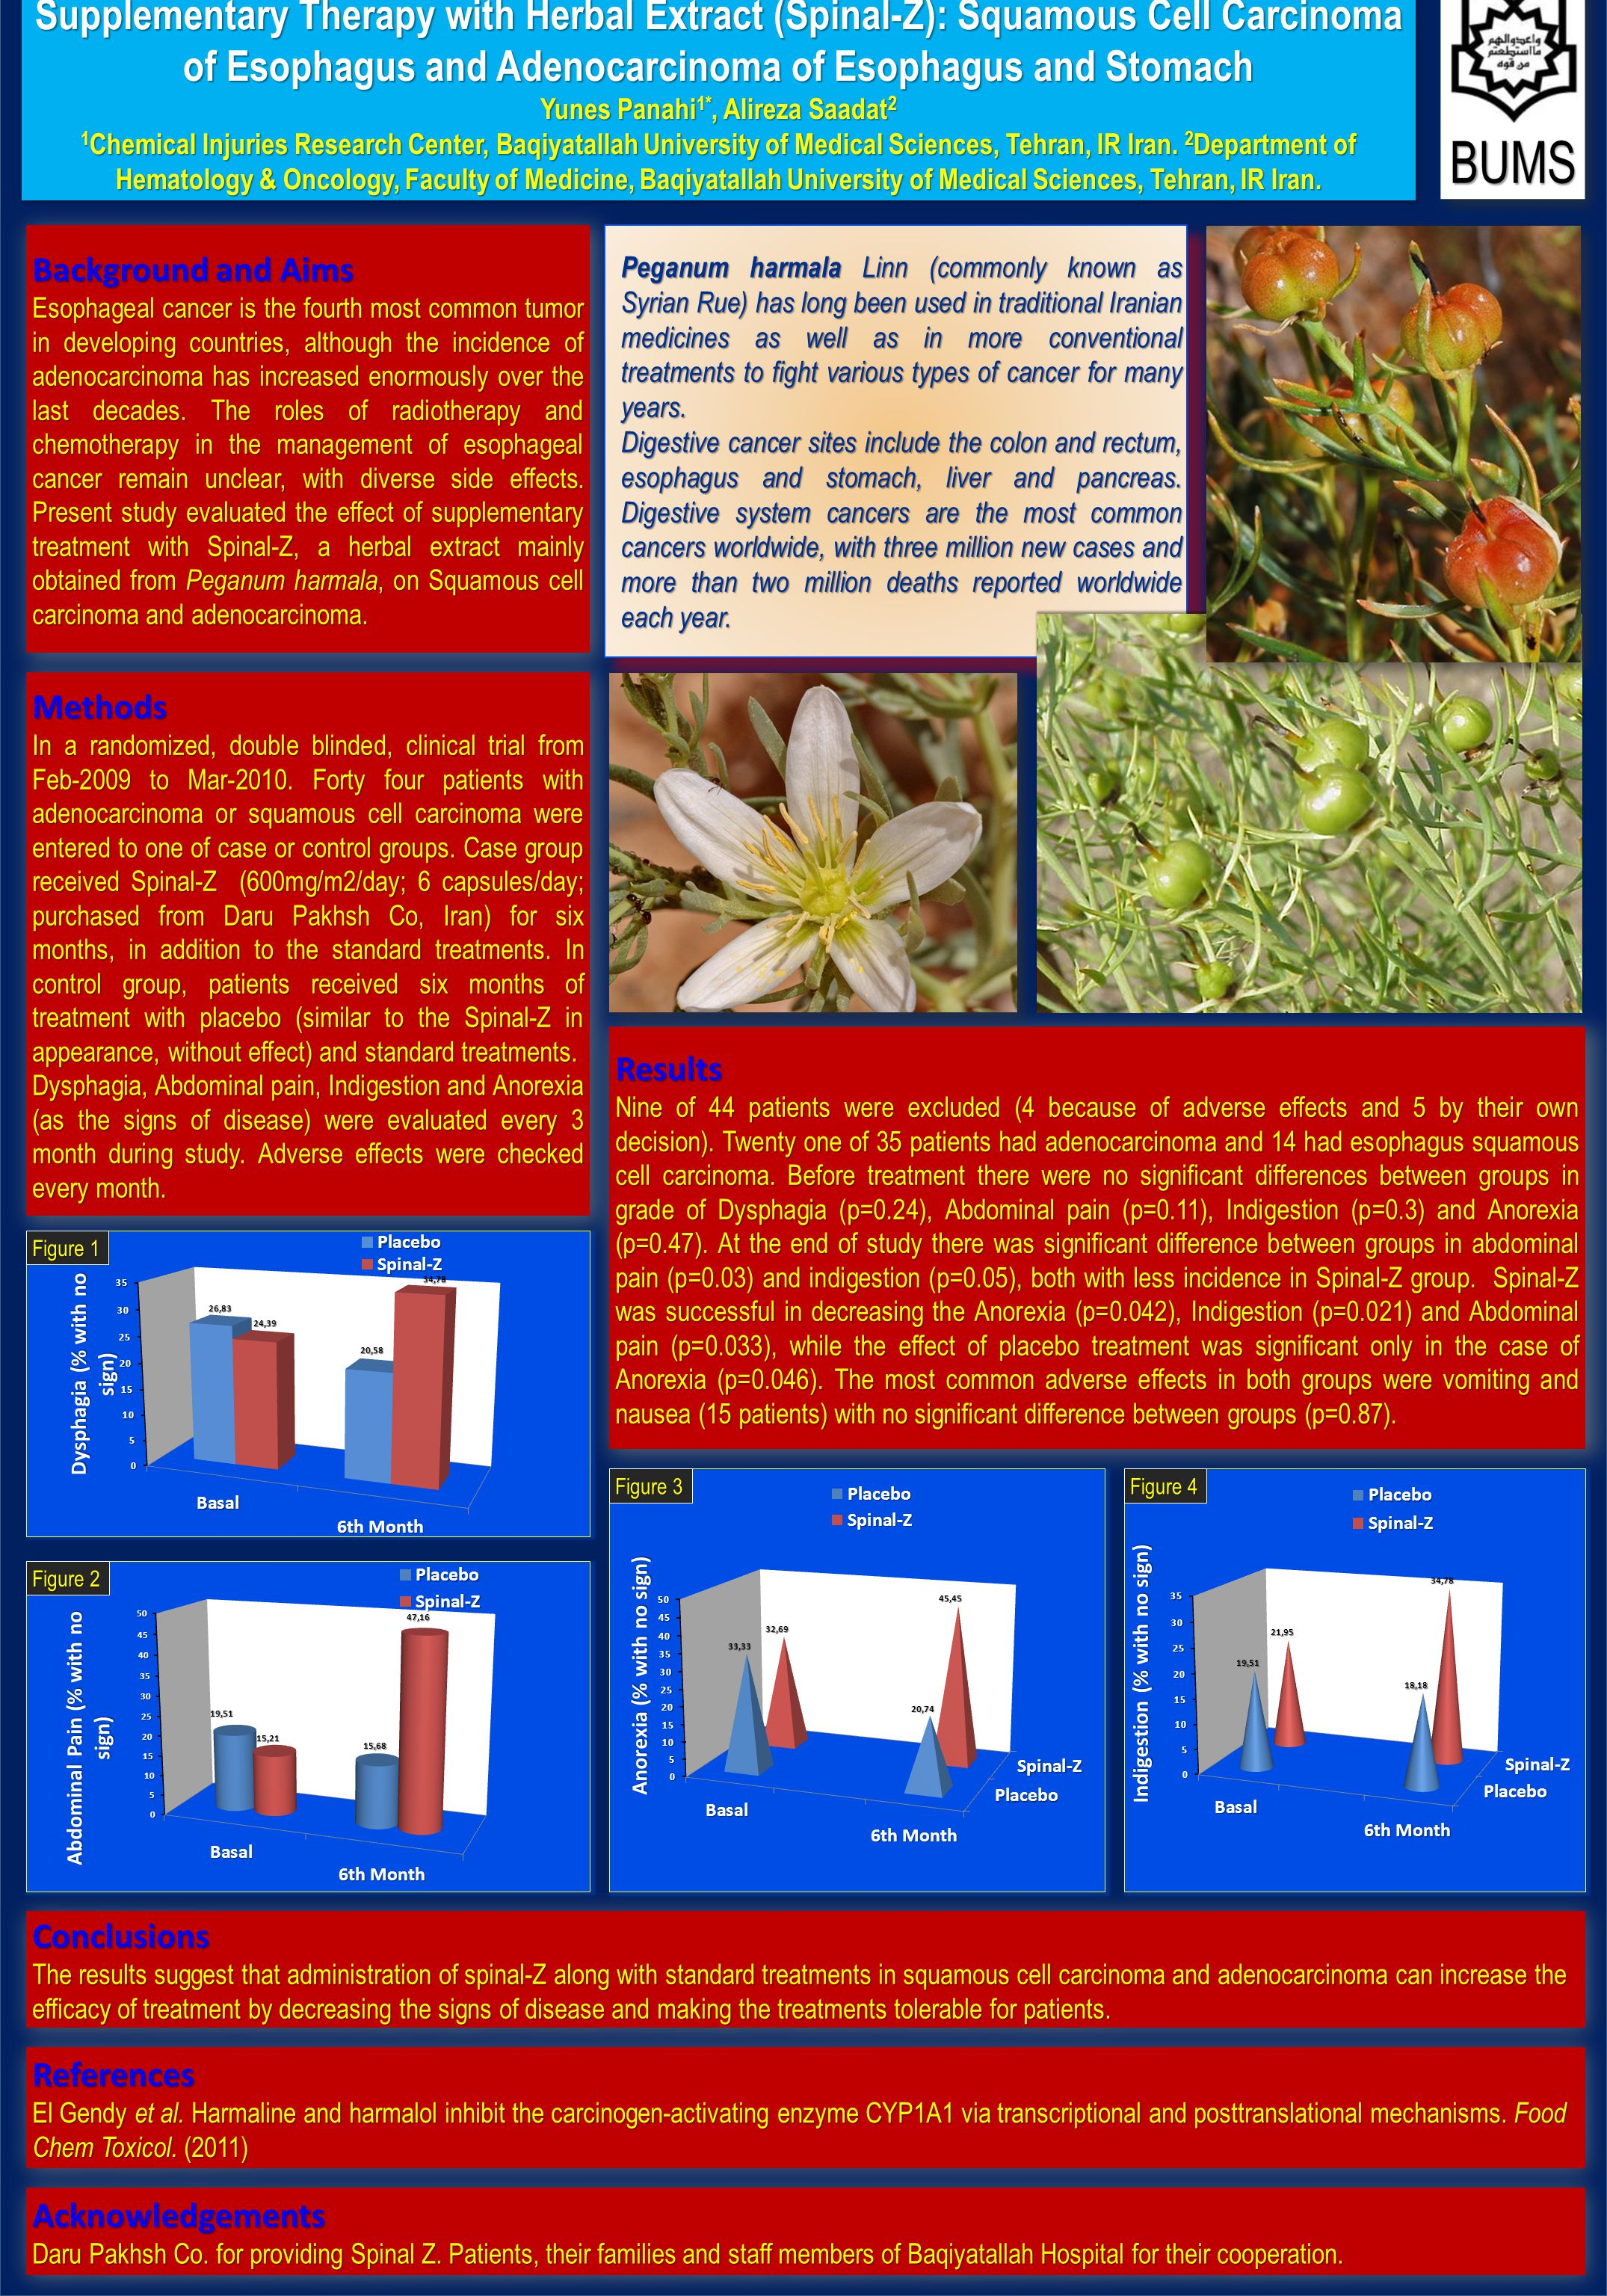 Supplementary Therapy with Herbal Extract (Spinal-Z): Squamous Cell Carcinoma of Esophagus and Adenocarcinoma of Esophagus and Stomach Yunes Panahi 1*